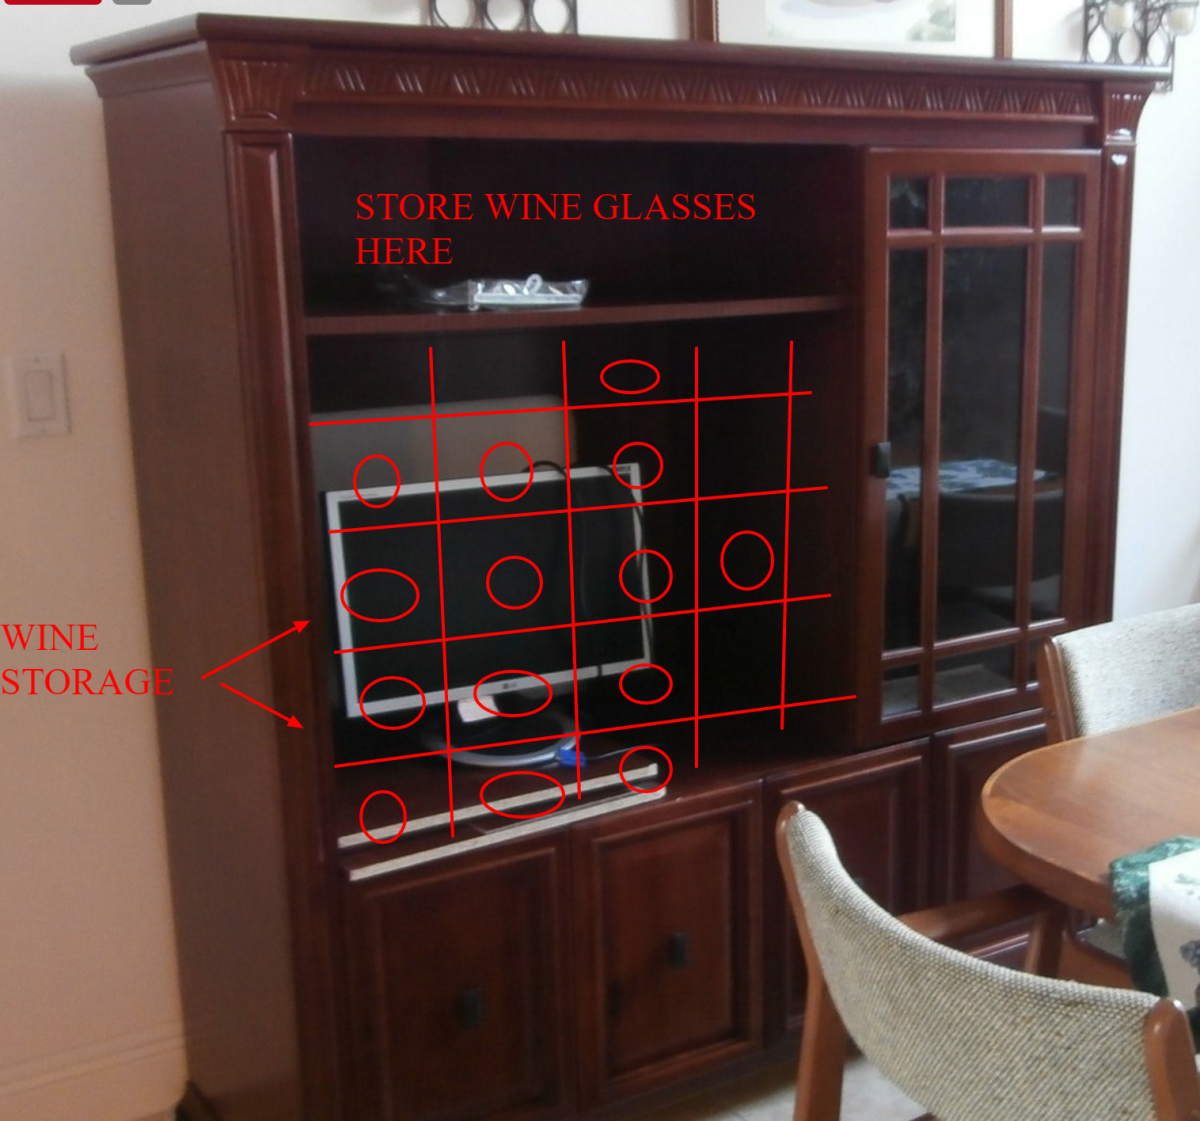 Get an insert to covert the large opening into a wine rack or if you do woodworking, make that yourself.